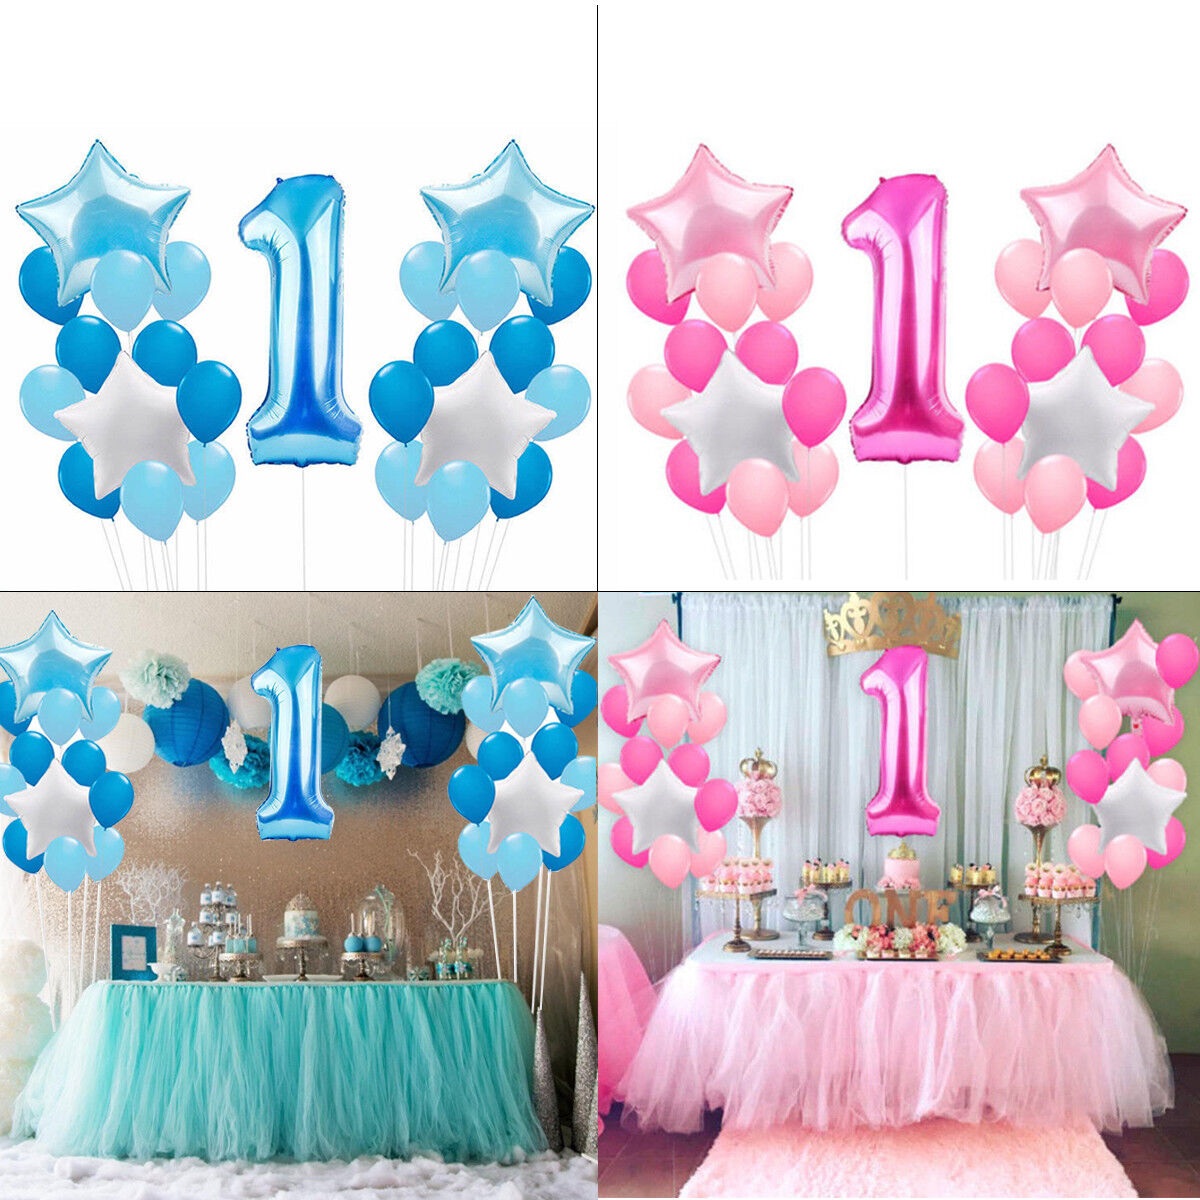 25pcs Foil Latex Balloons Set 1st Birthday Party Decorations Boy Girl Pink Blue Ebay